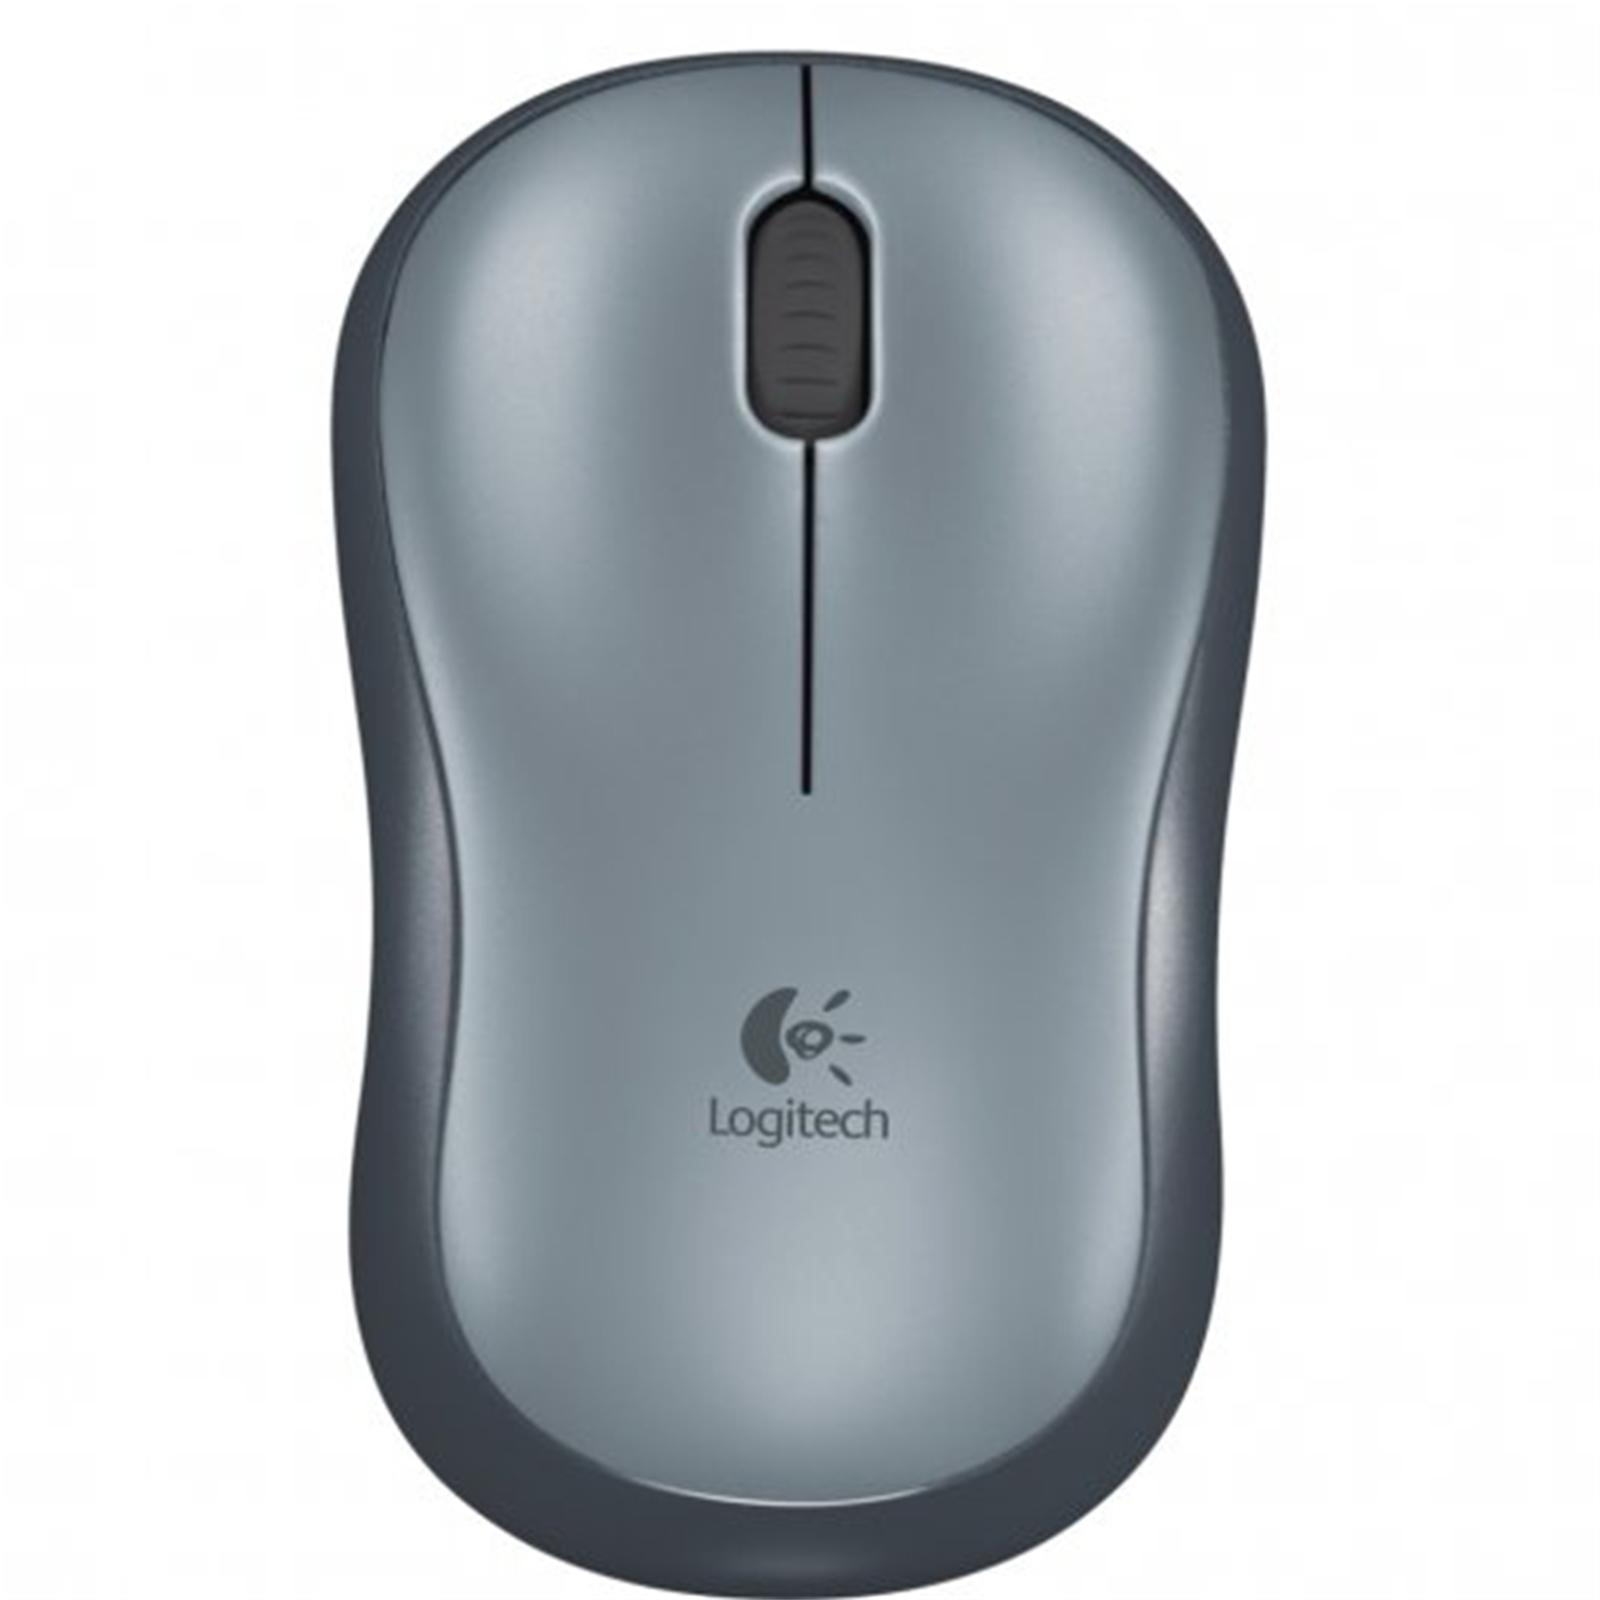 Logitech Wireless mouse m185 black with nano receiver _910002235